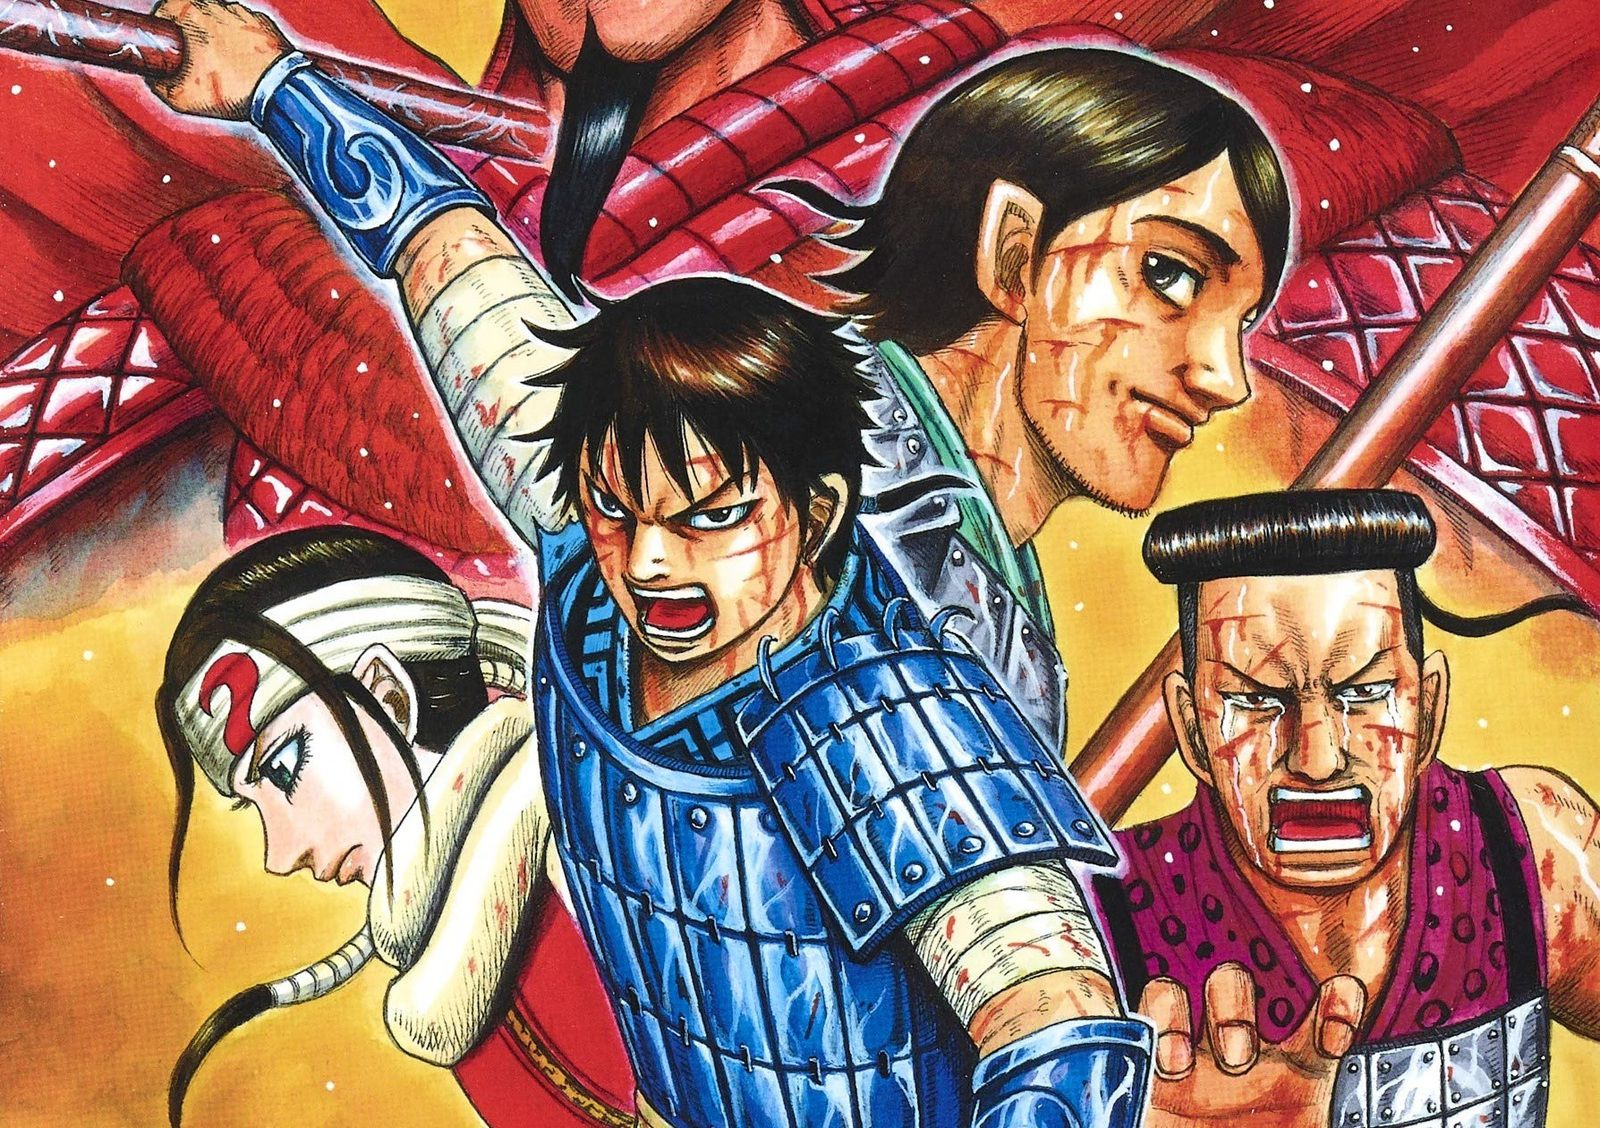 Kingdom Chapter 658 Release Date and Manga Read Online